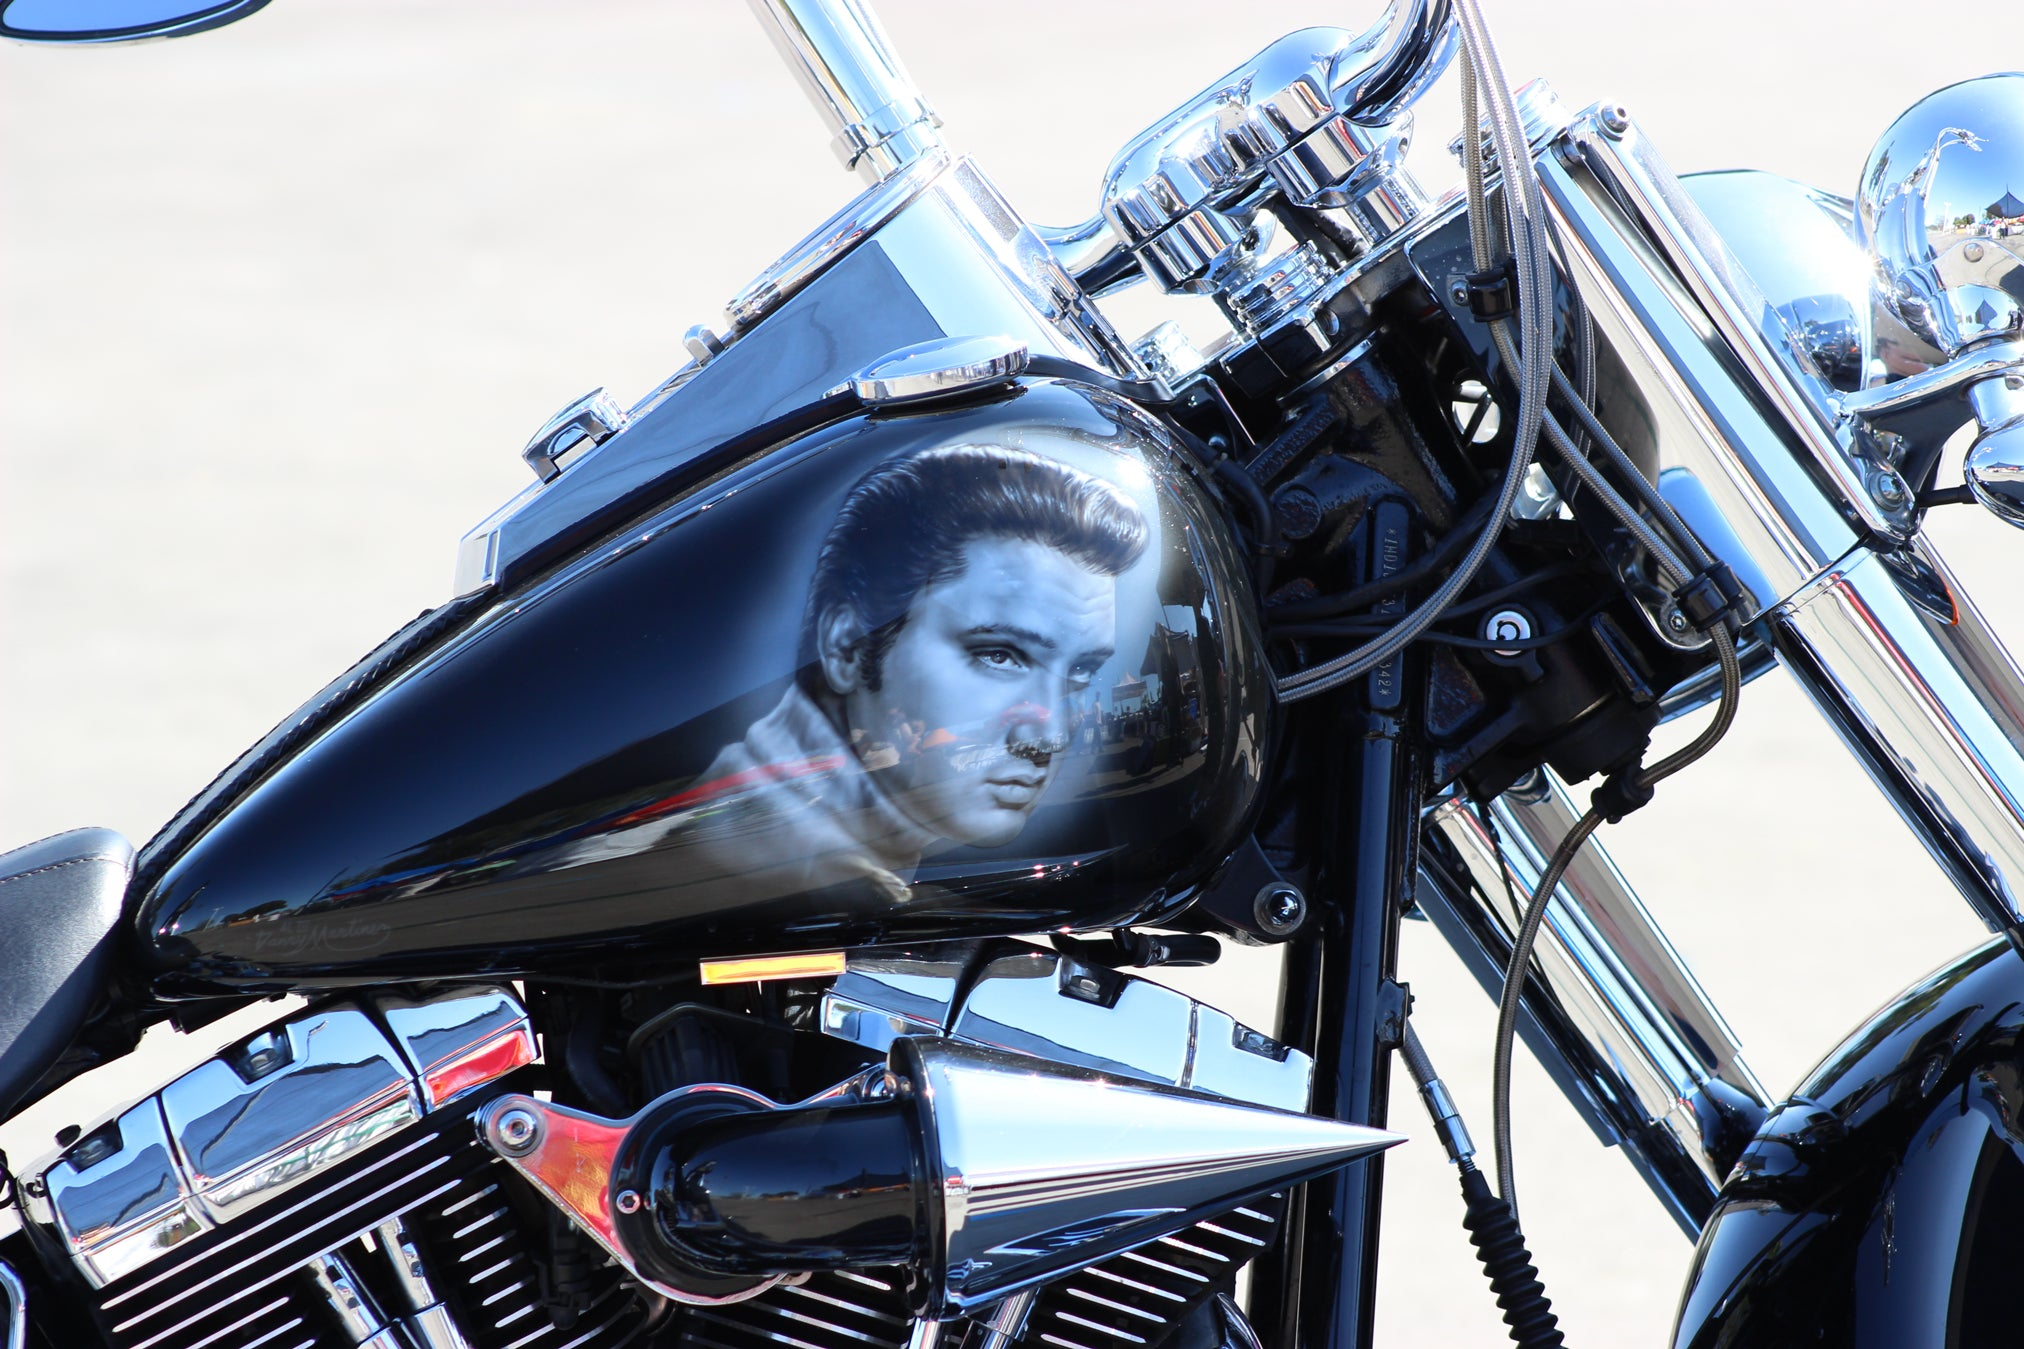 Suavecito Pomade 15th Annual Elvis Festival Bike